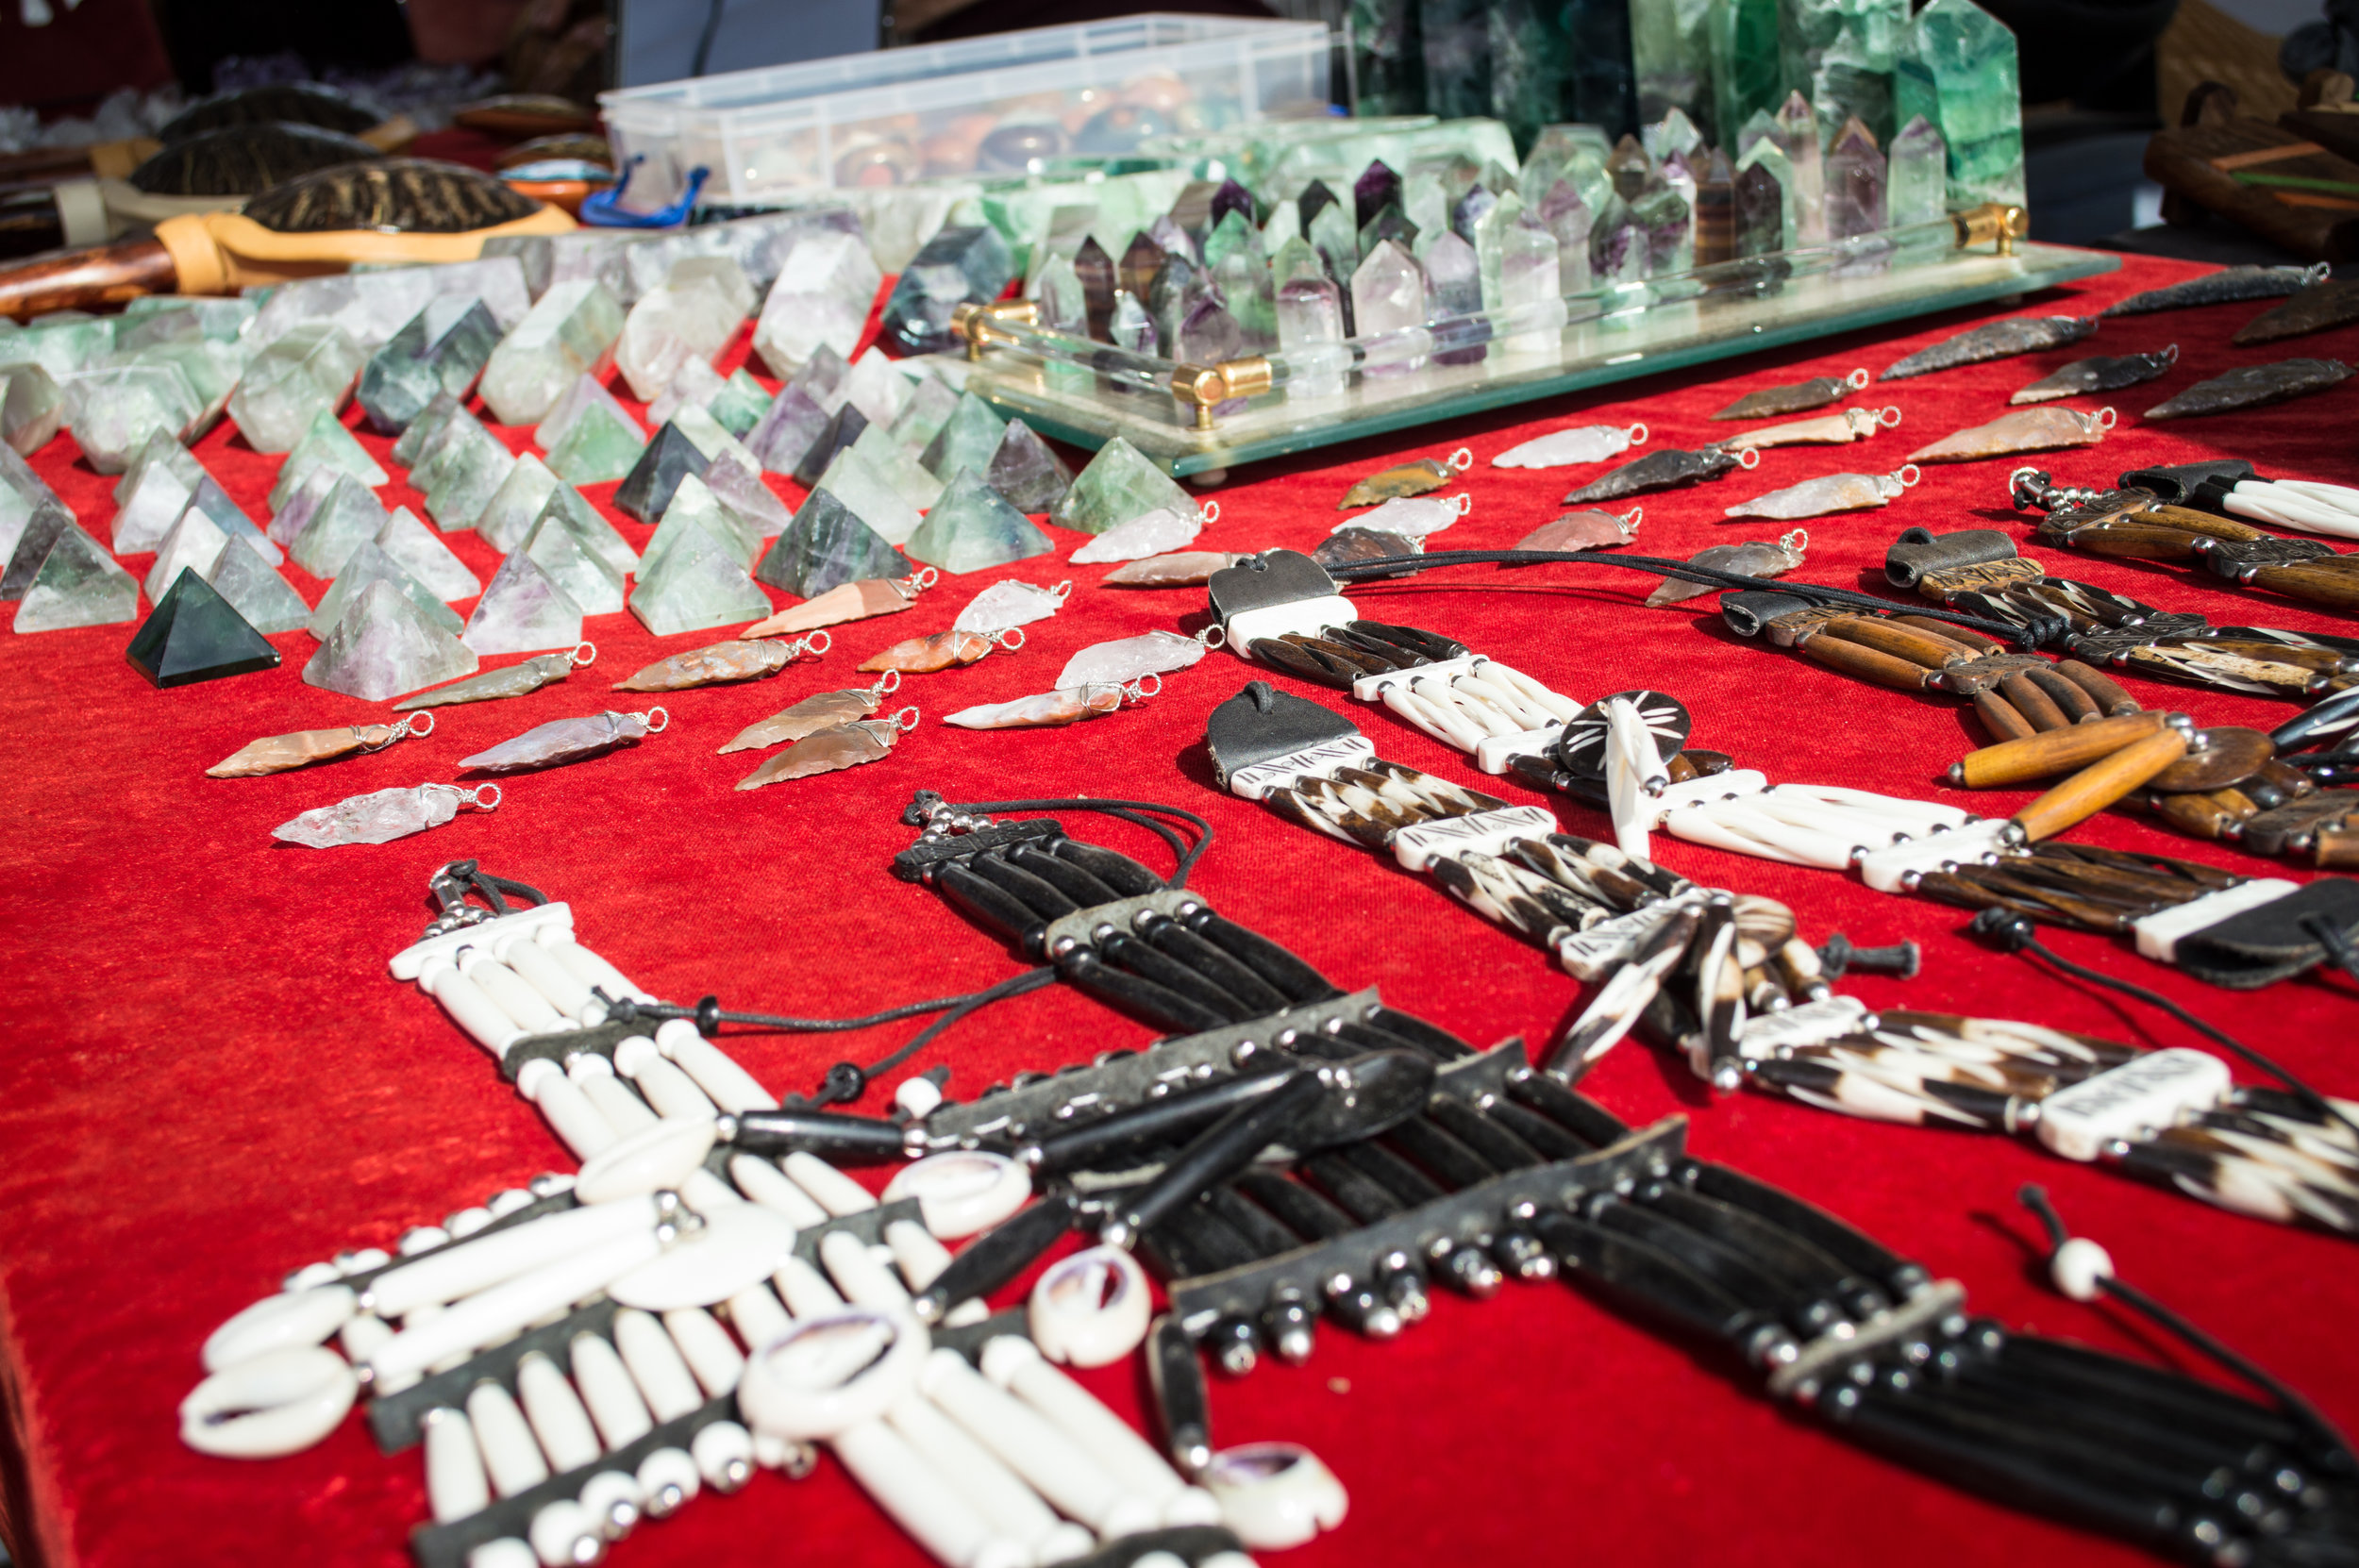 Items for sale from a vendor at Waterlook Music Fest. Photo by Nick Bailey